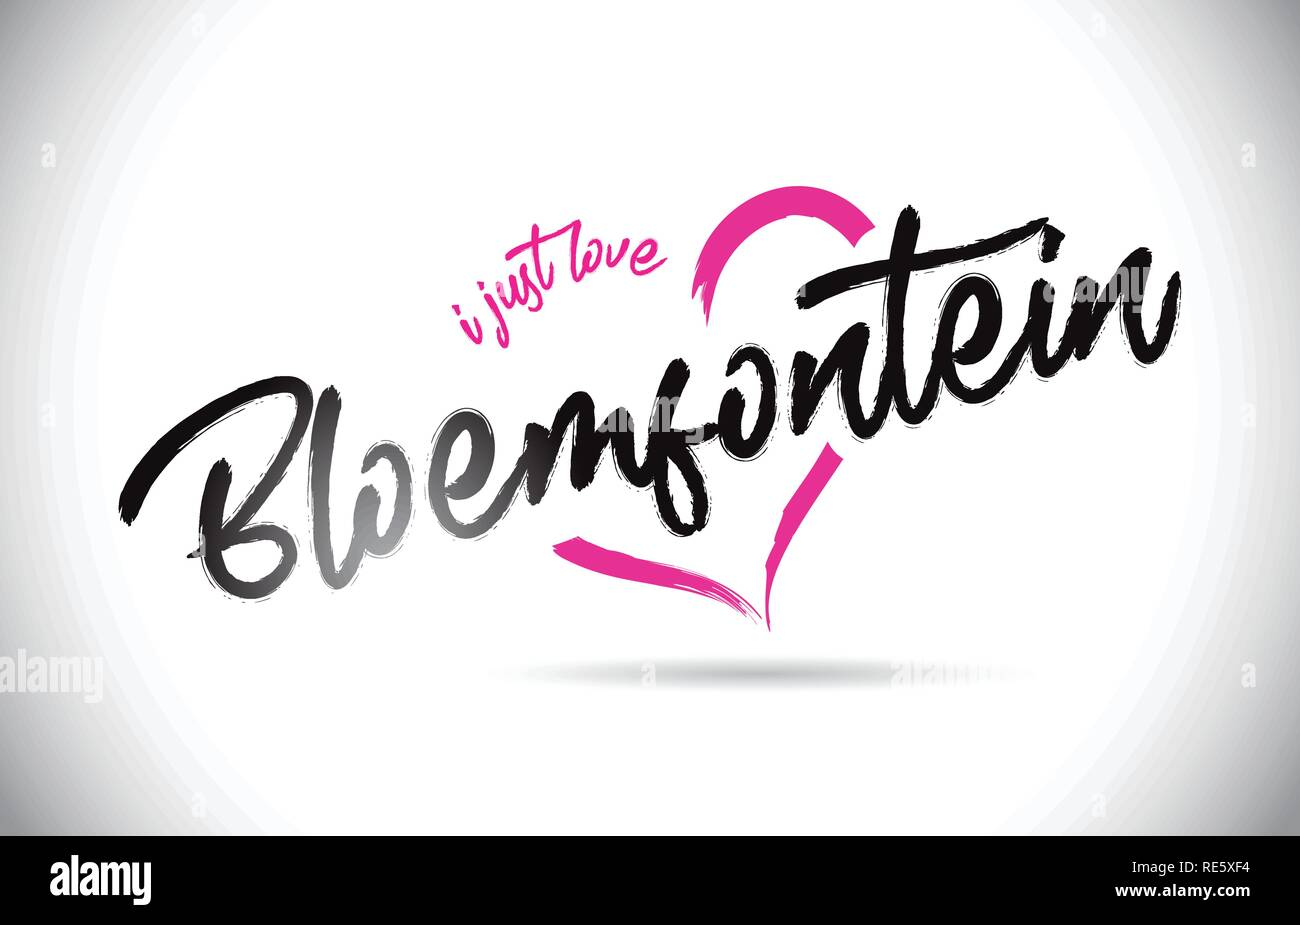 Bloemfontein I Just Love Word Text with Handwritten Font and Pink Heart Shape Vector Illustration. - Stock Image